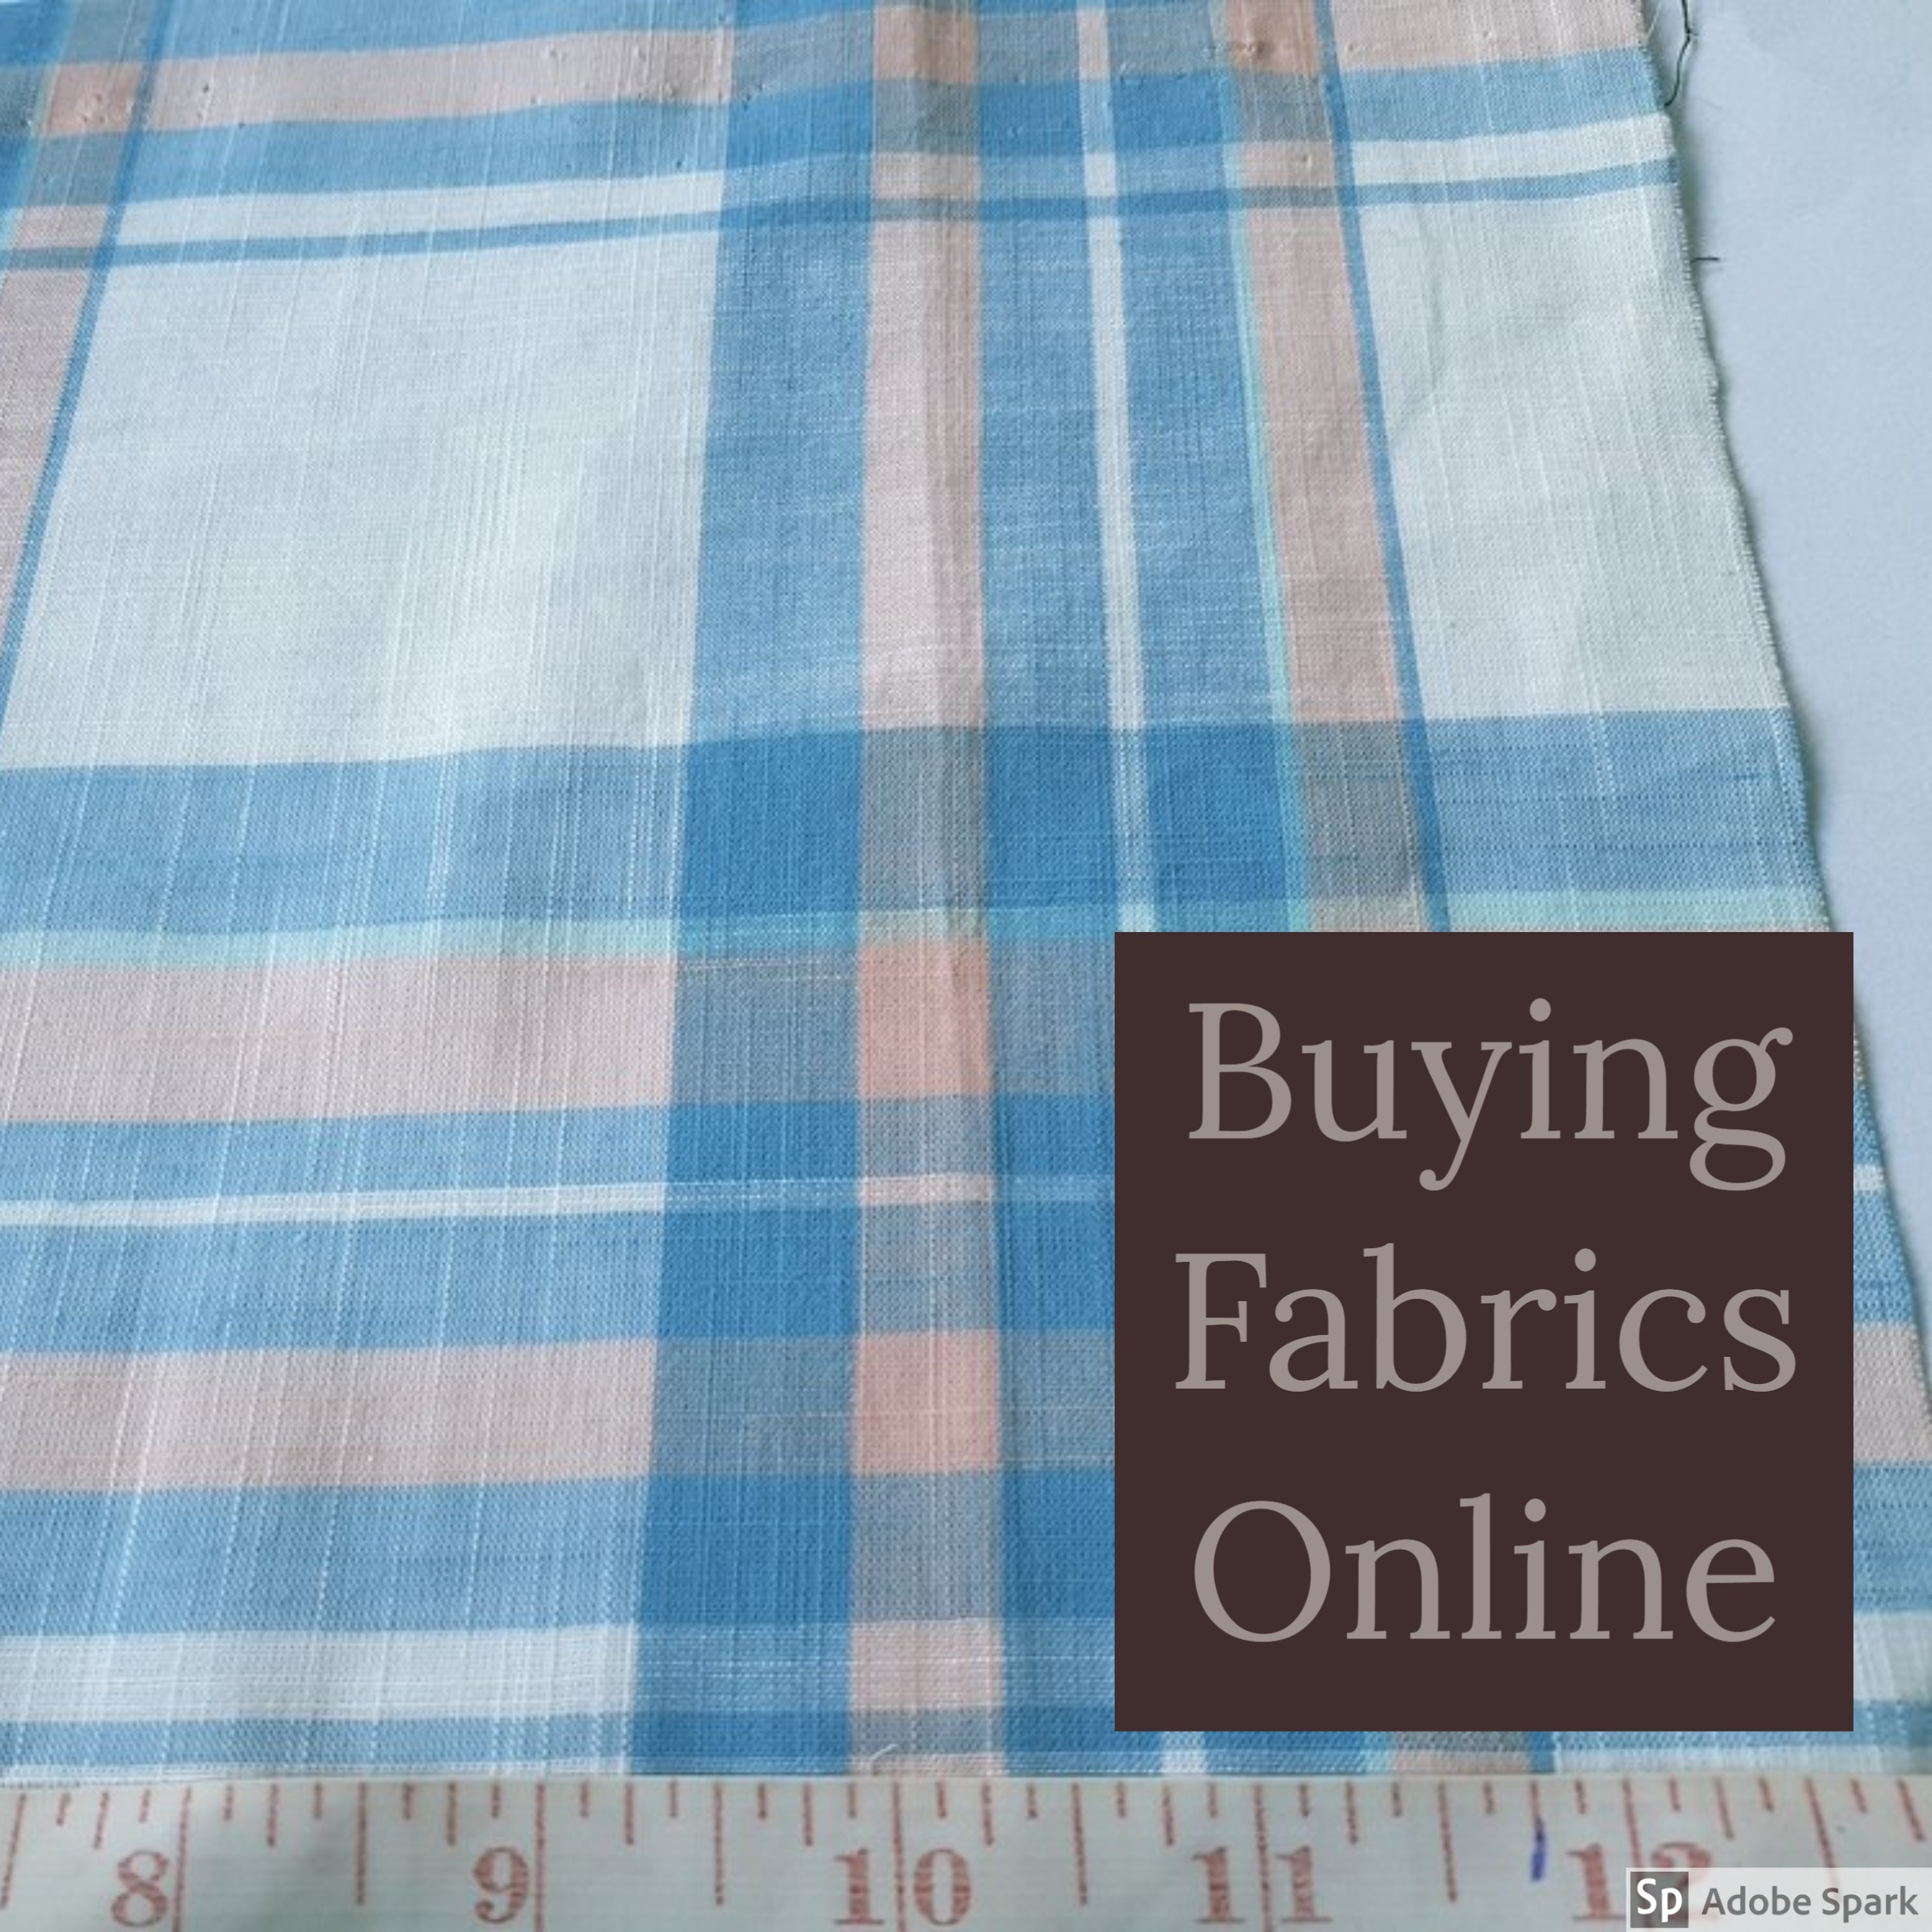 Buying Fabric Online & what has led to its growth